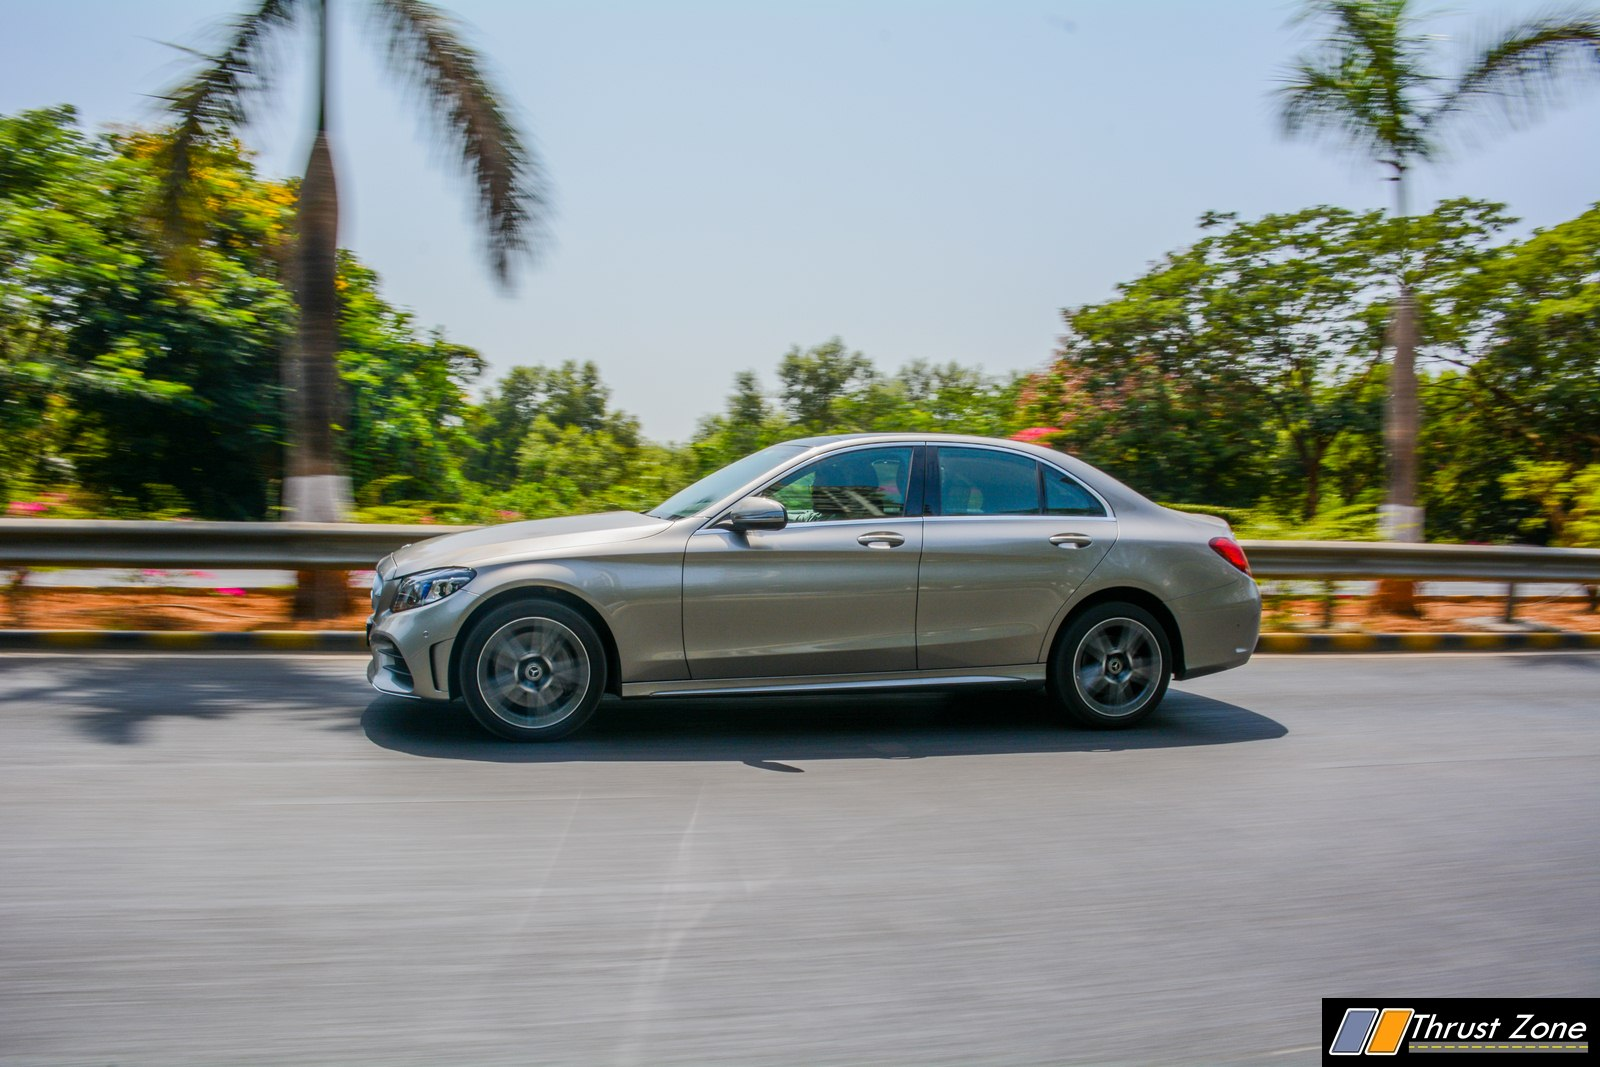 https://www.thrustzone.com/wp-content/uploads/2019/05/2019-Mercedes-C300d-Diesel-India-Review-3.jpg